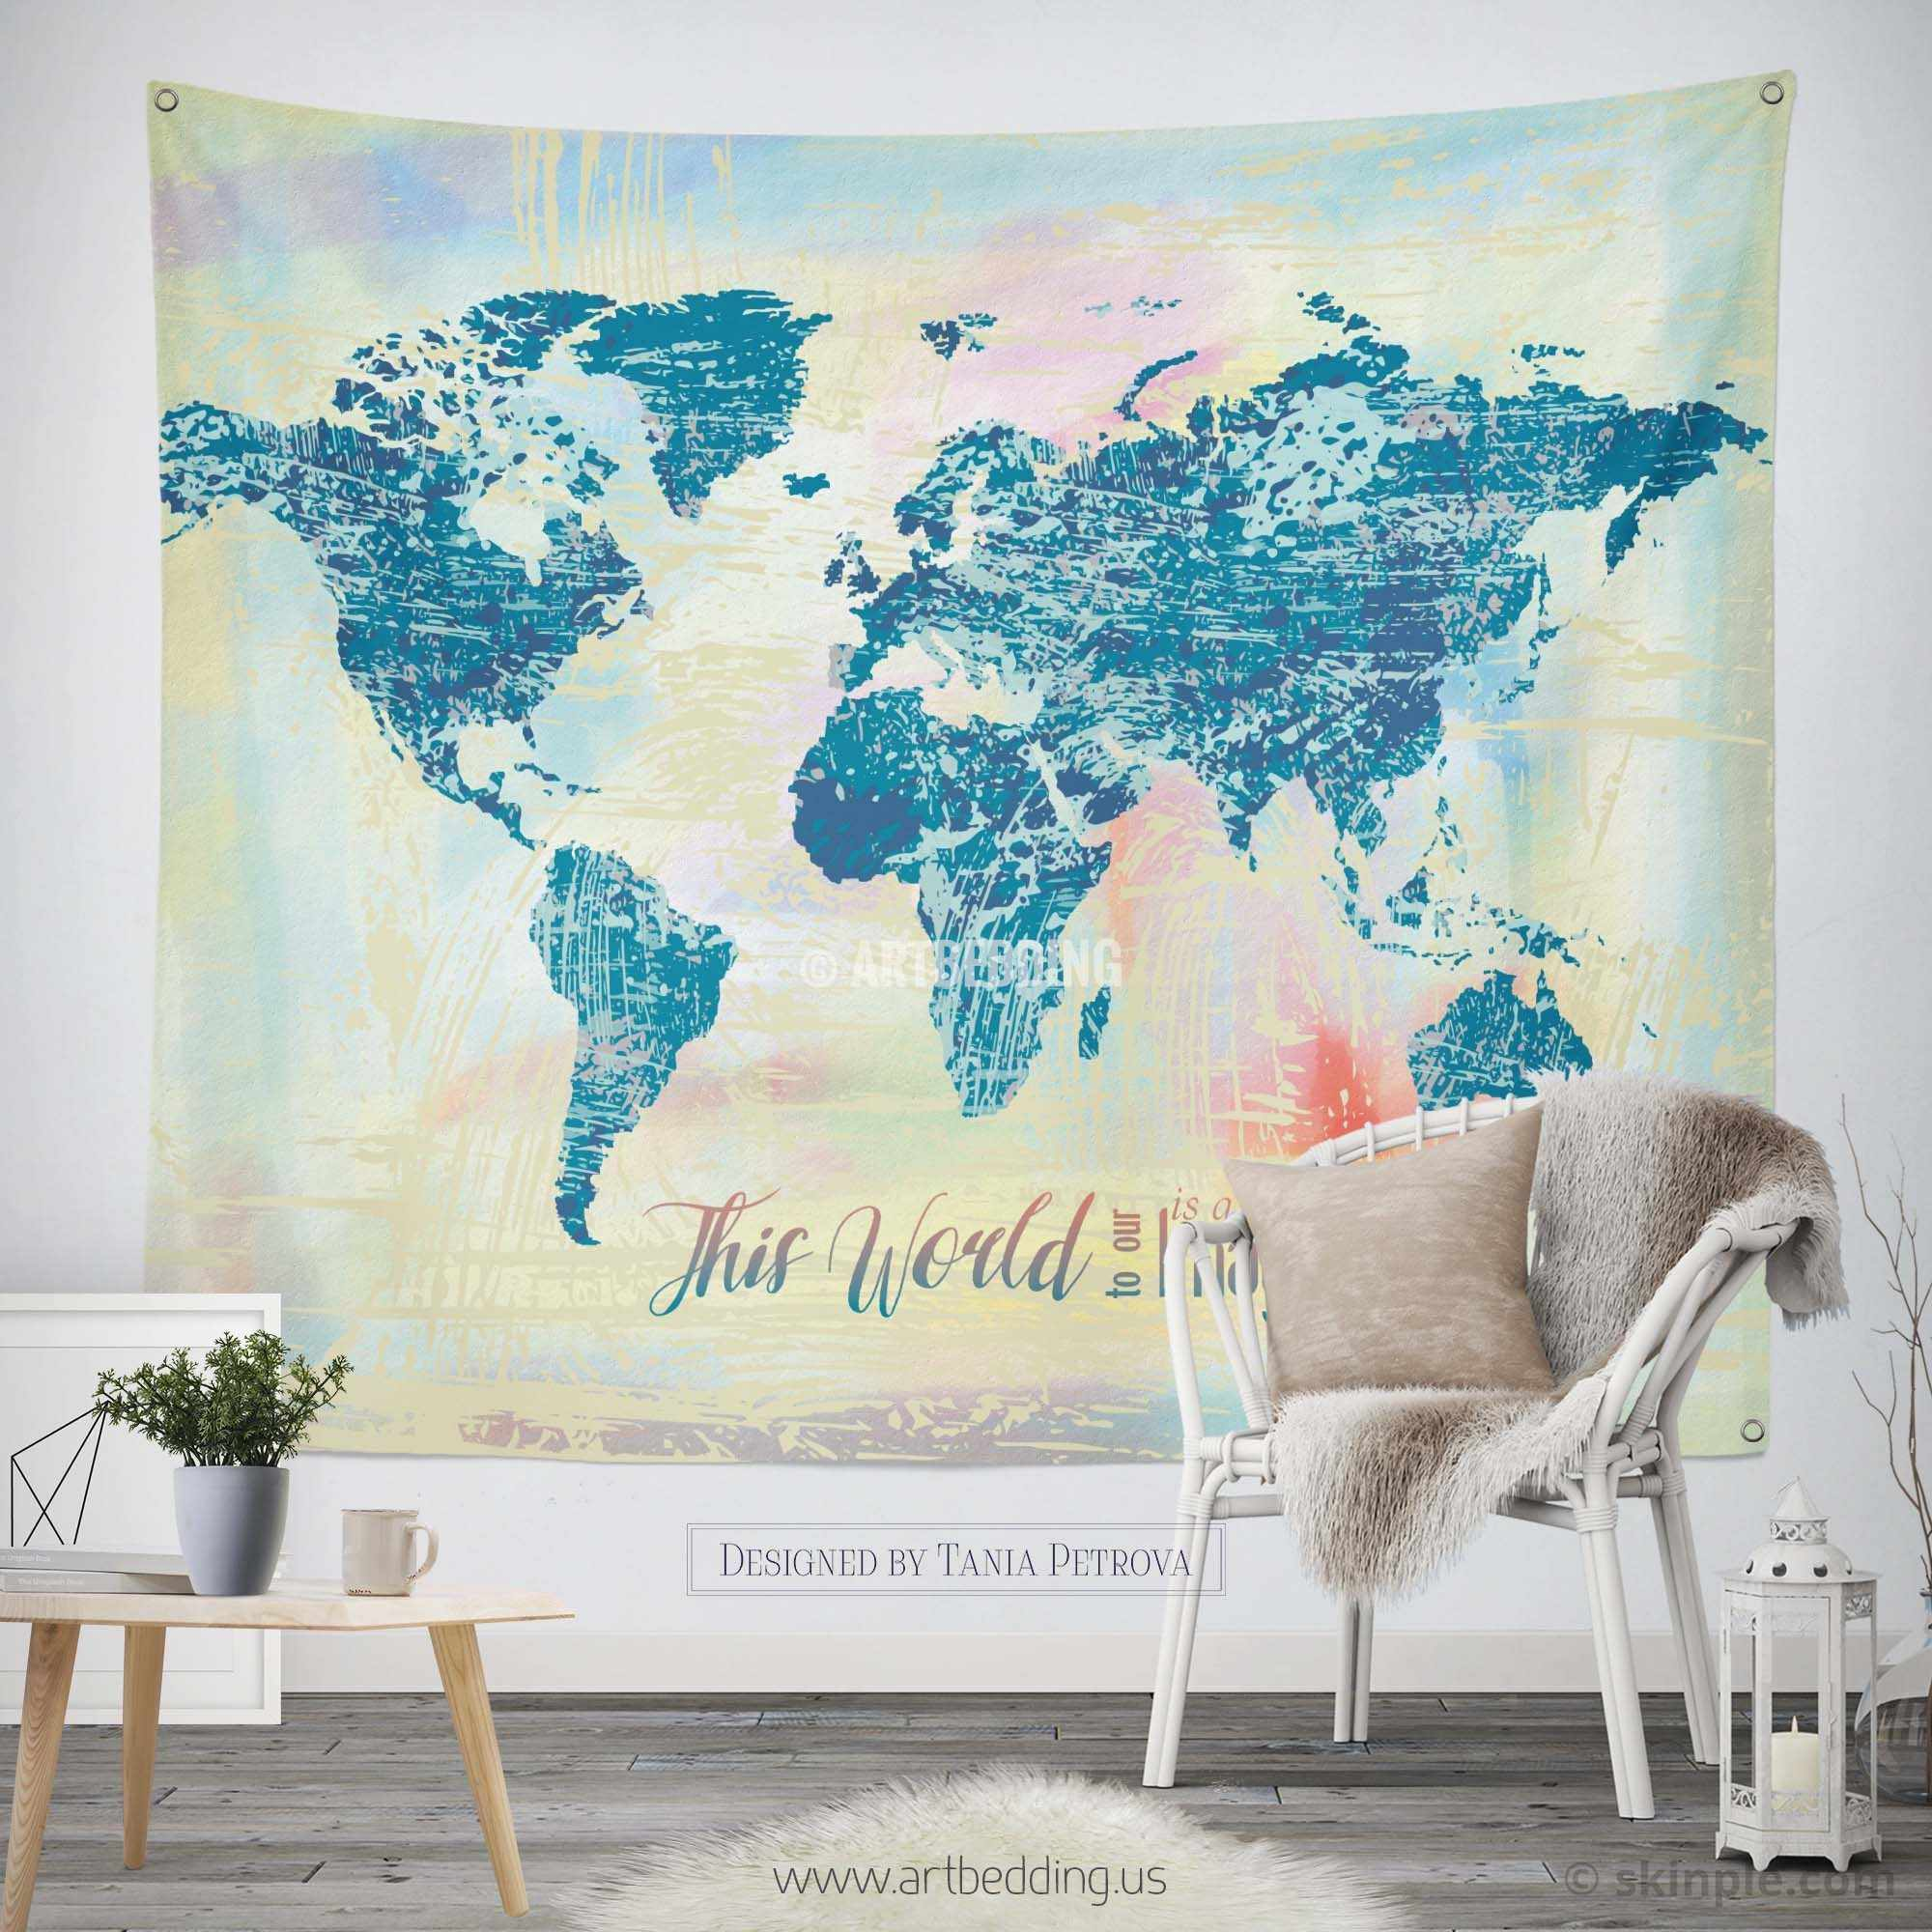 Watercolor world map wall tapestry grunge world map wall tapestry watercolor world map wall tapestry grunge world map wall tapestry hippie tapestry wall hanging gumiabroncs Choice Image